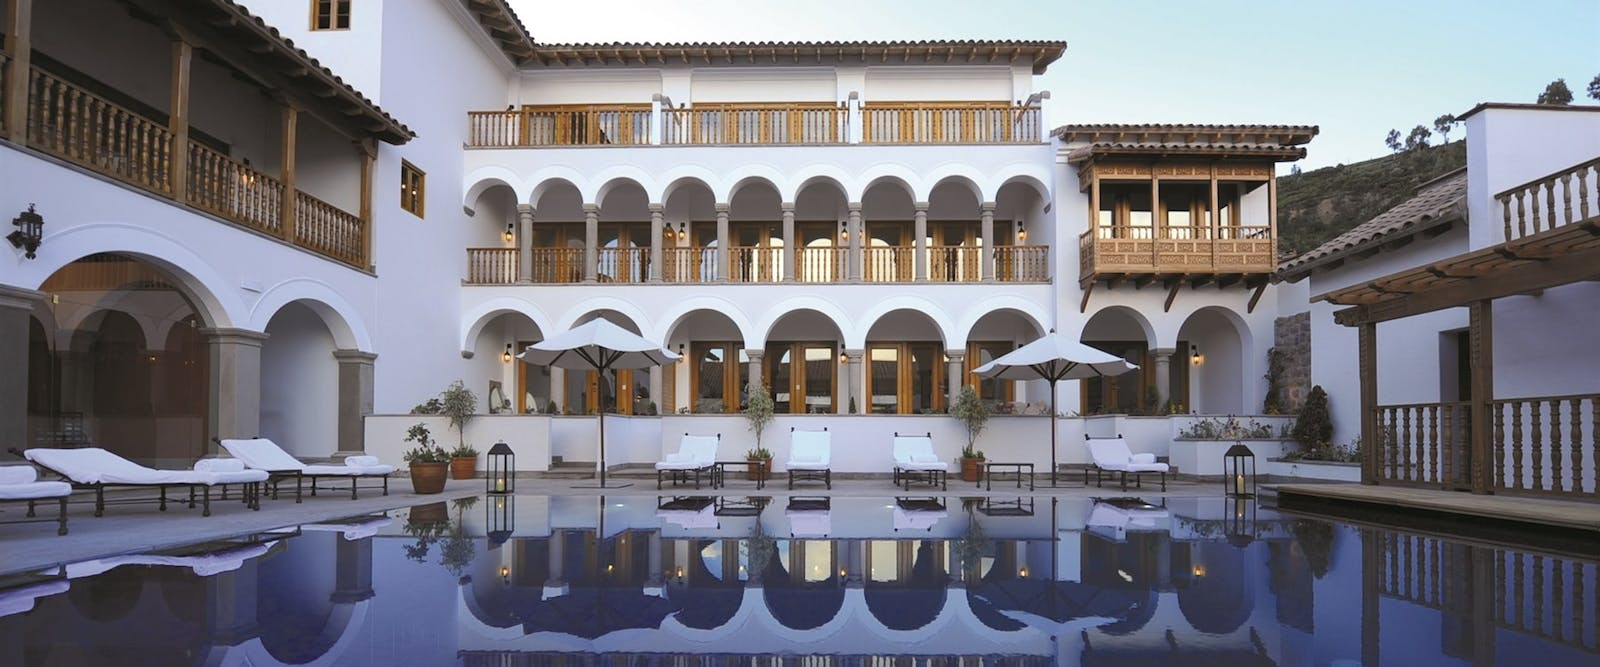 Pool area at Palacio Nazarenas, A Belmond Hotel, Cusco